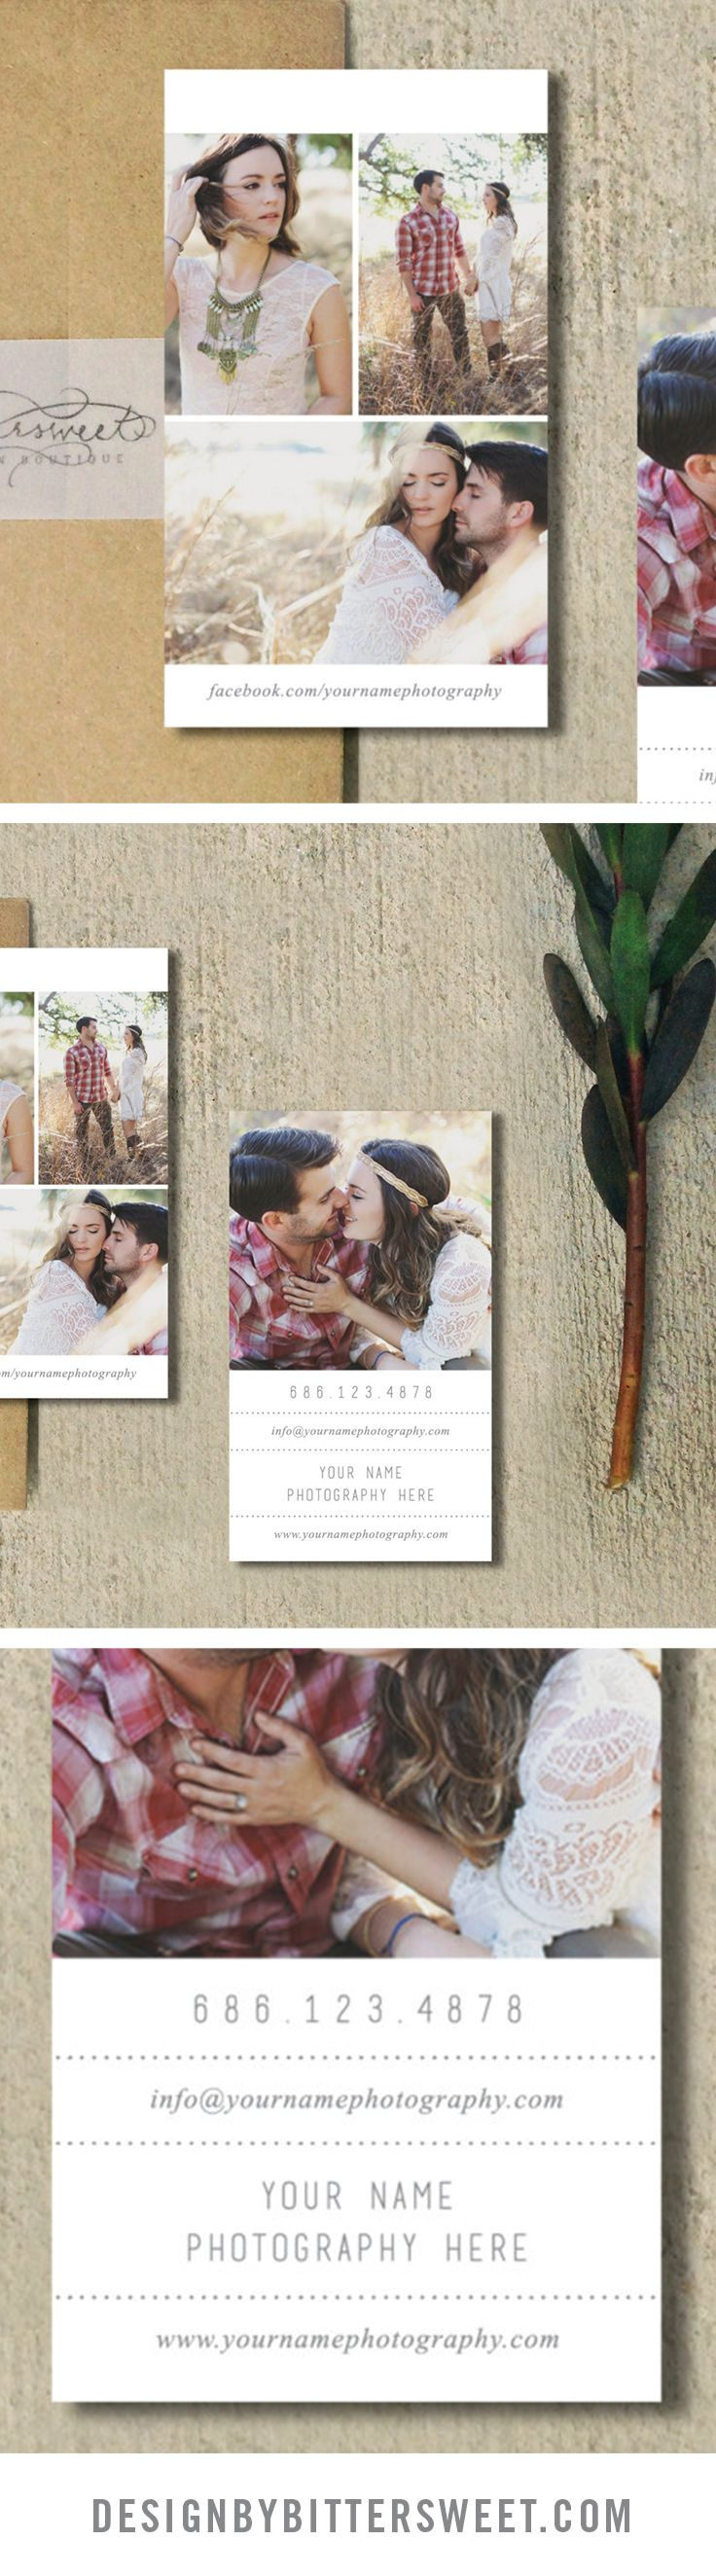 32 best photography business cards images on pinterest business business card template vertical business card template for photographers photoshop templates moo business cards psd template accmission Gallery